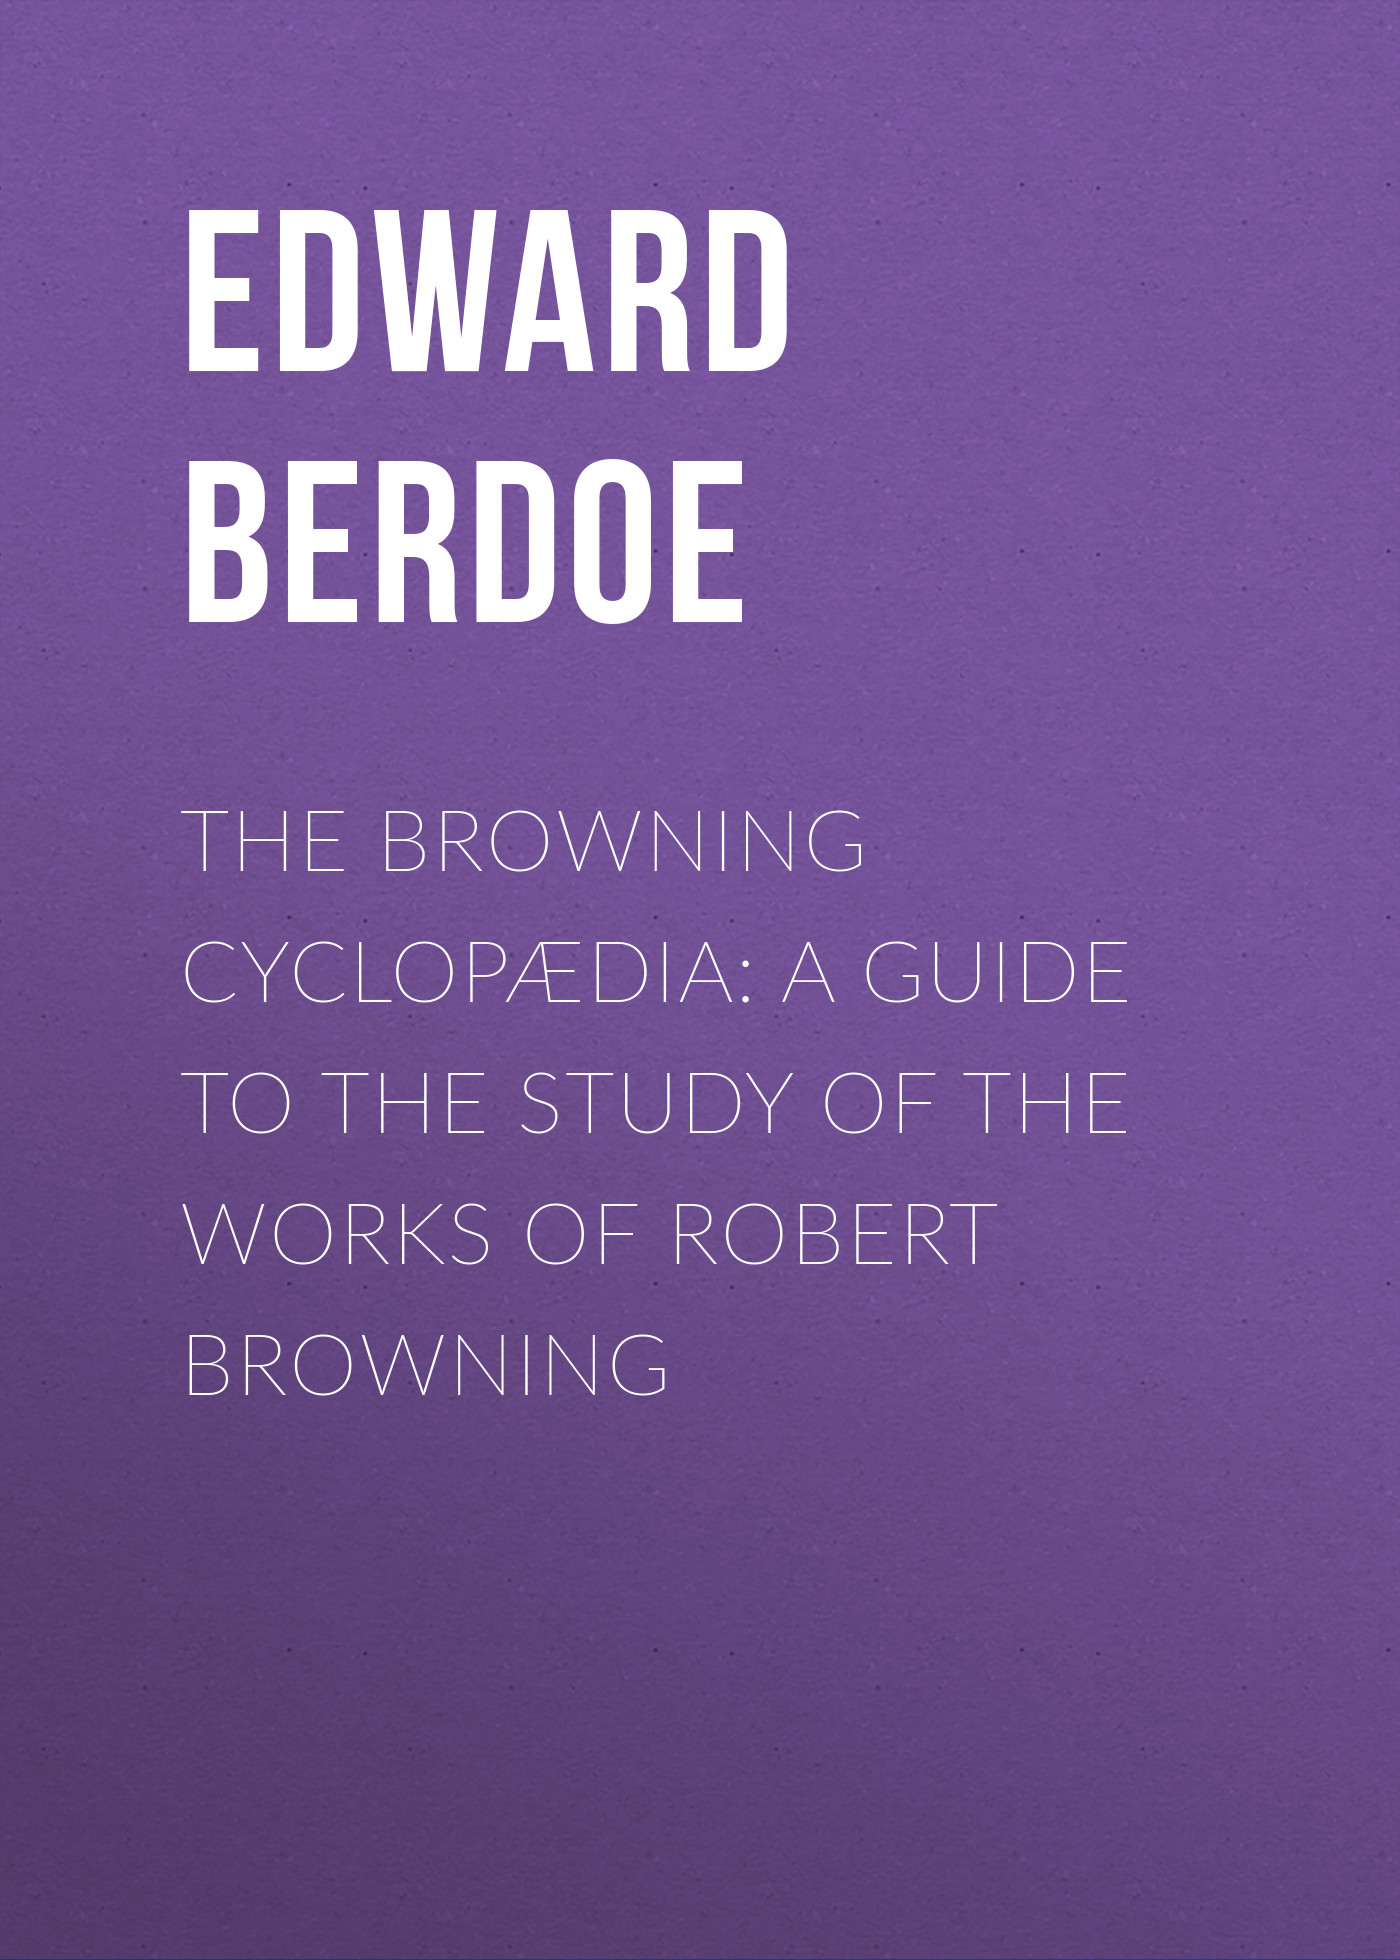 лучшая цена Edward Berdoe The Browning Cyclopædia: A Guide to the Study of the Works of Robert Browning